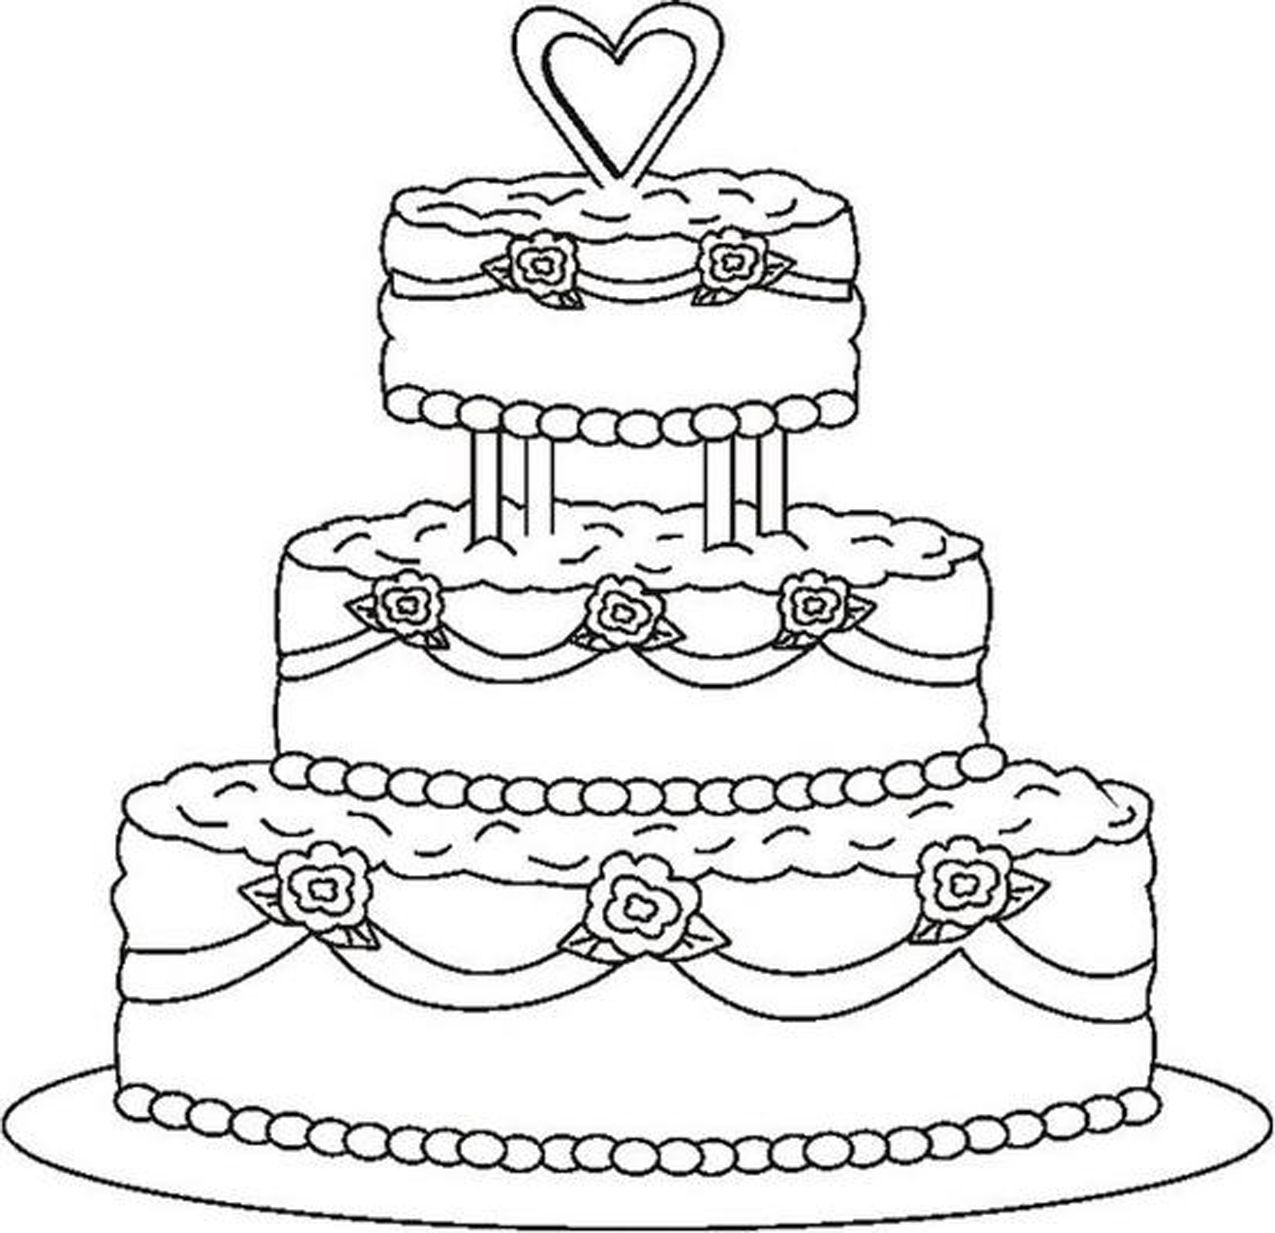 Drawing Cake Colour Wedding Coloring Pages Coloring Kids Stencils